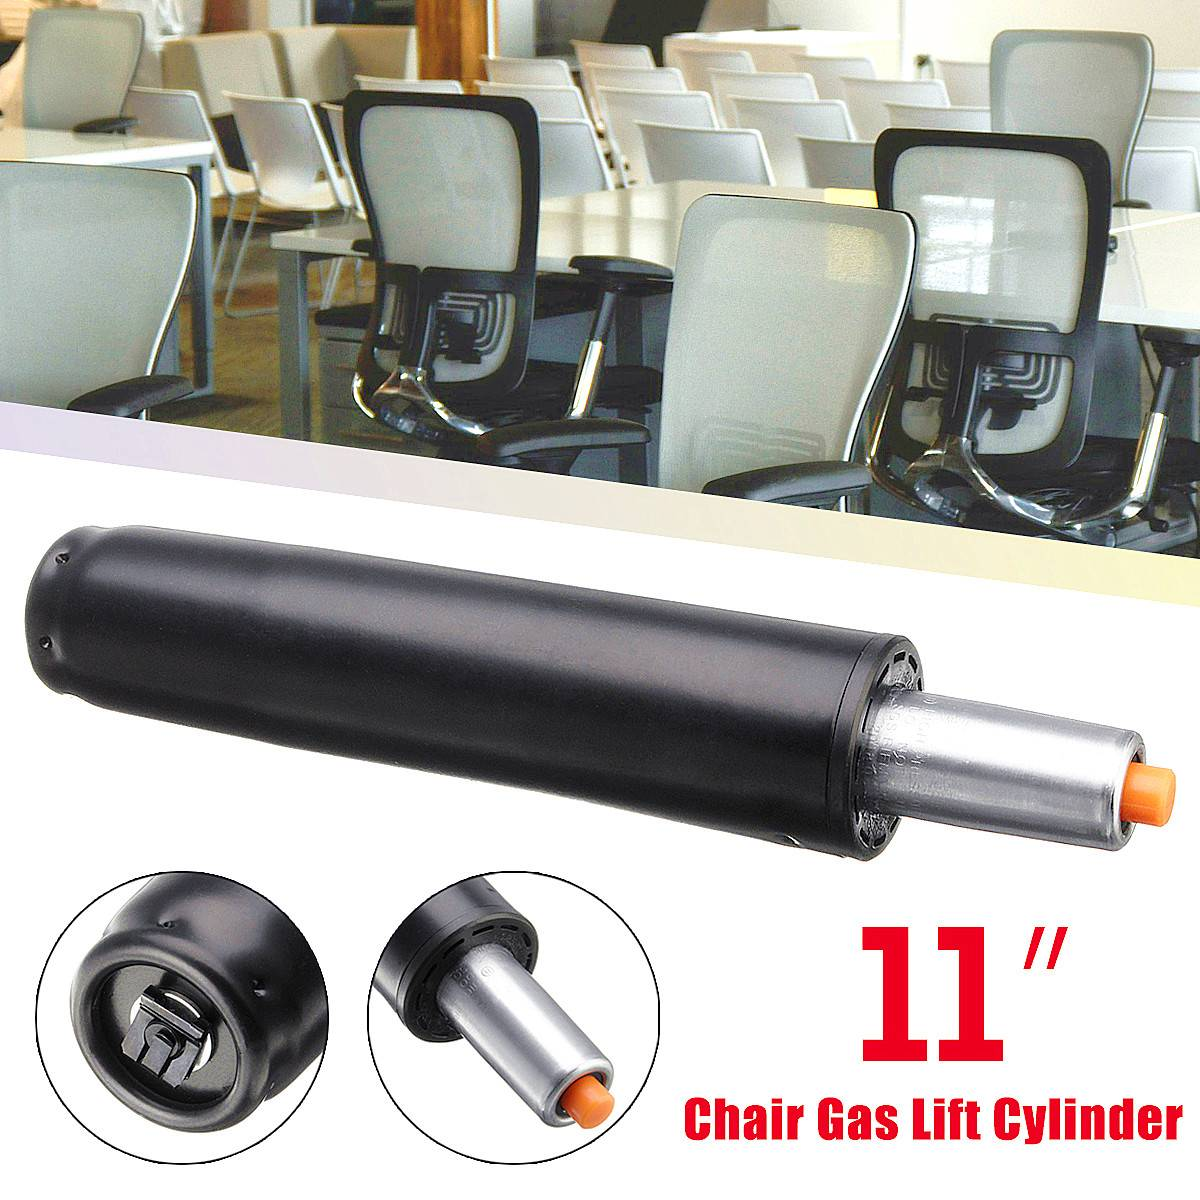 Heavy   11'' Pneumatic Rod Gas Lift Cylinder Chair Replacement Accessories Pneumatic Parts